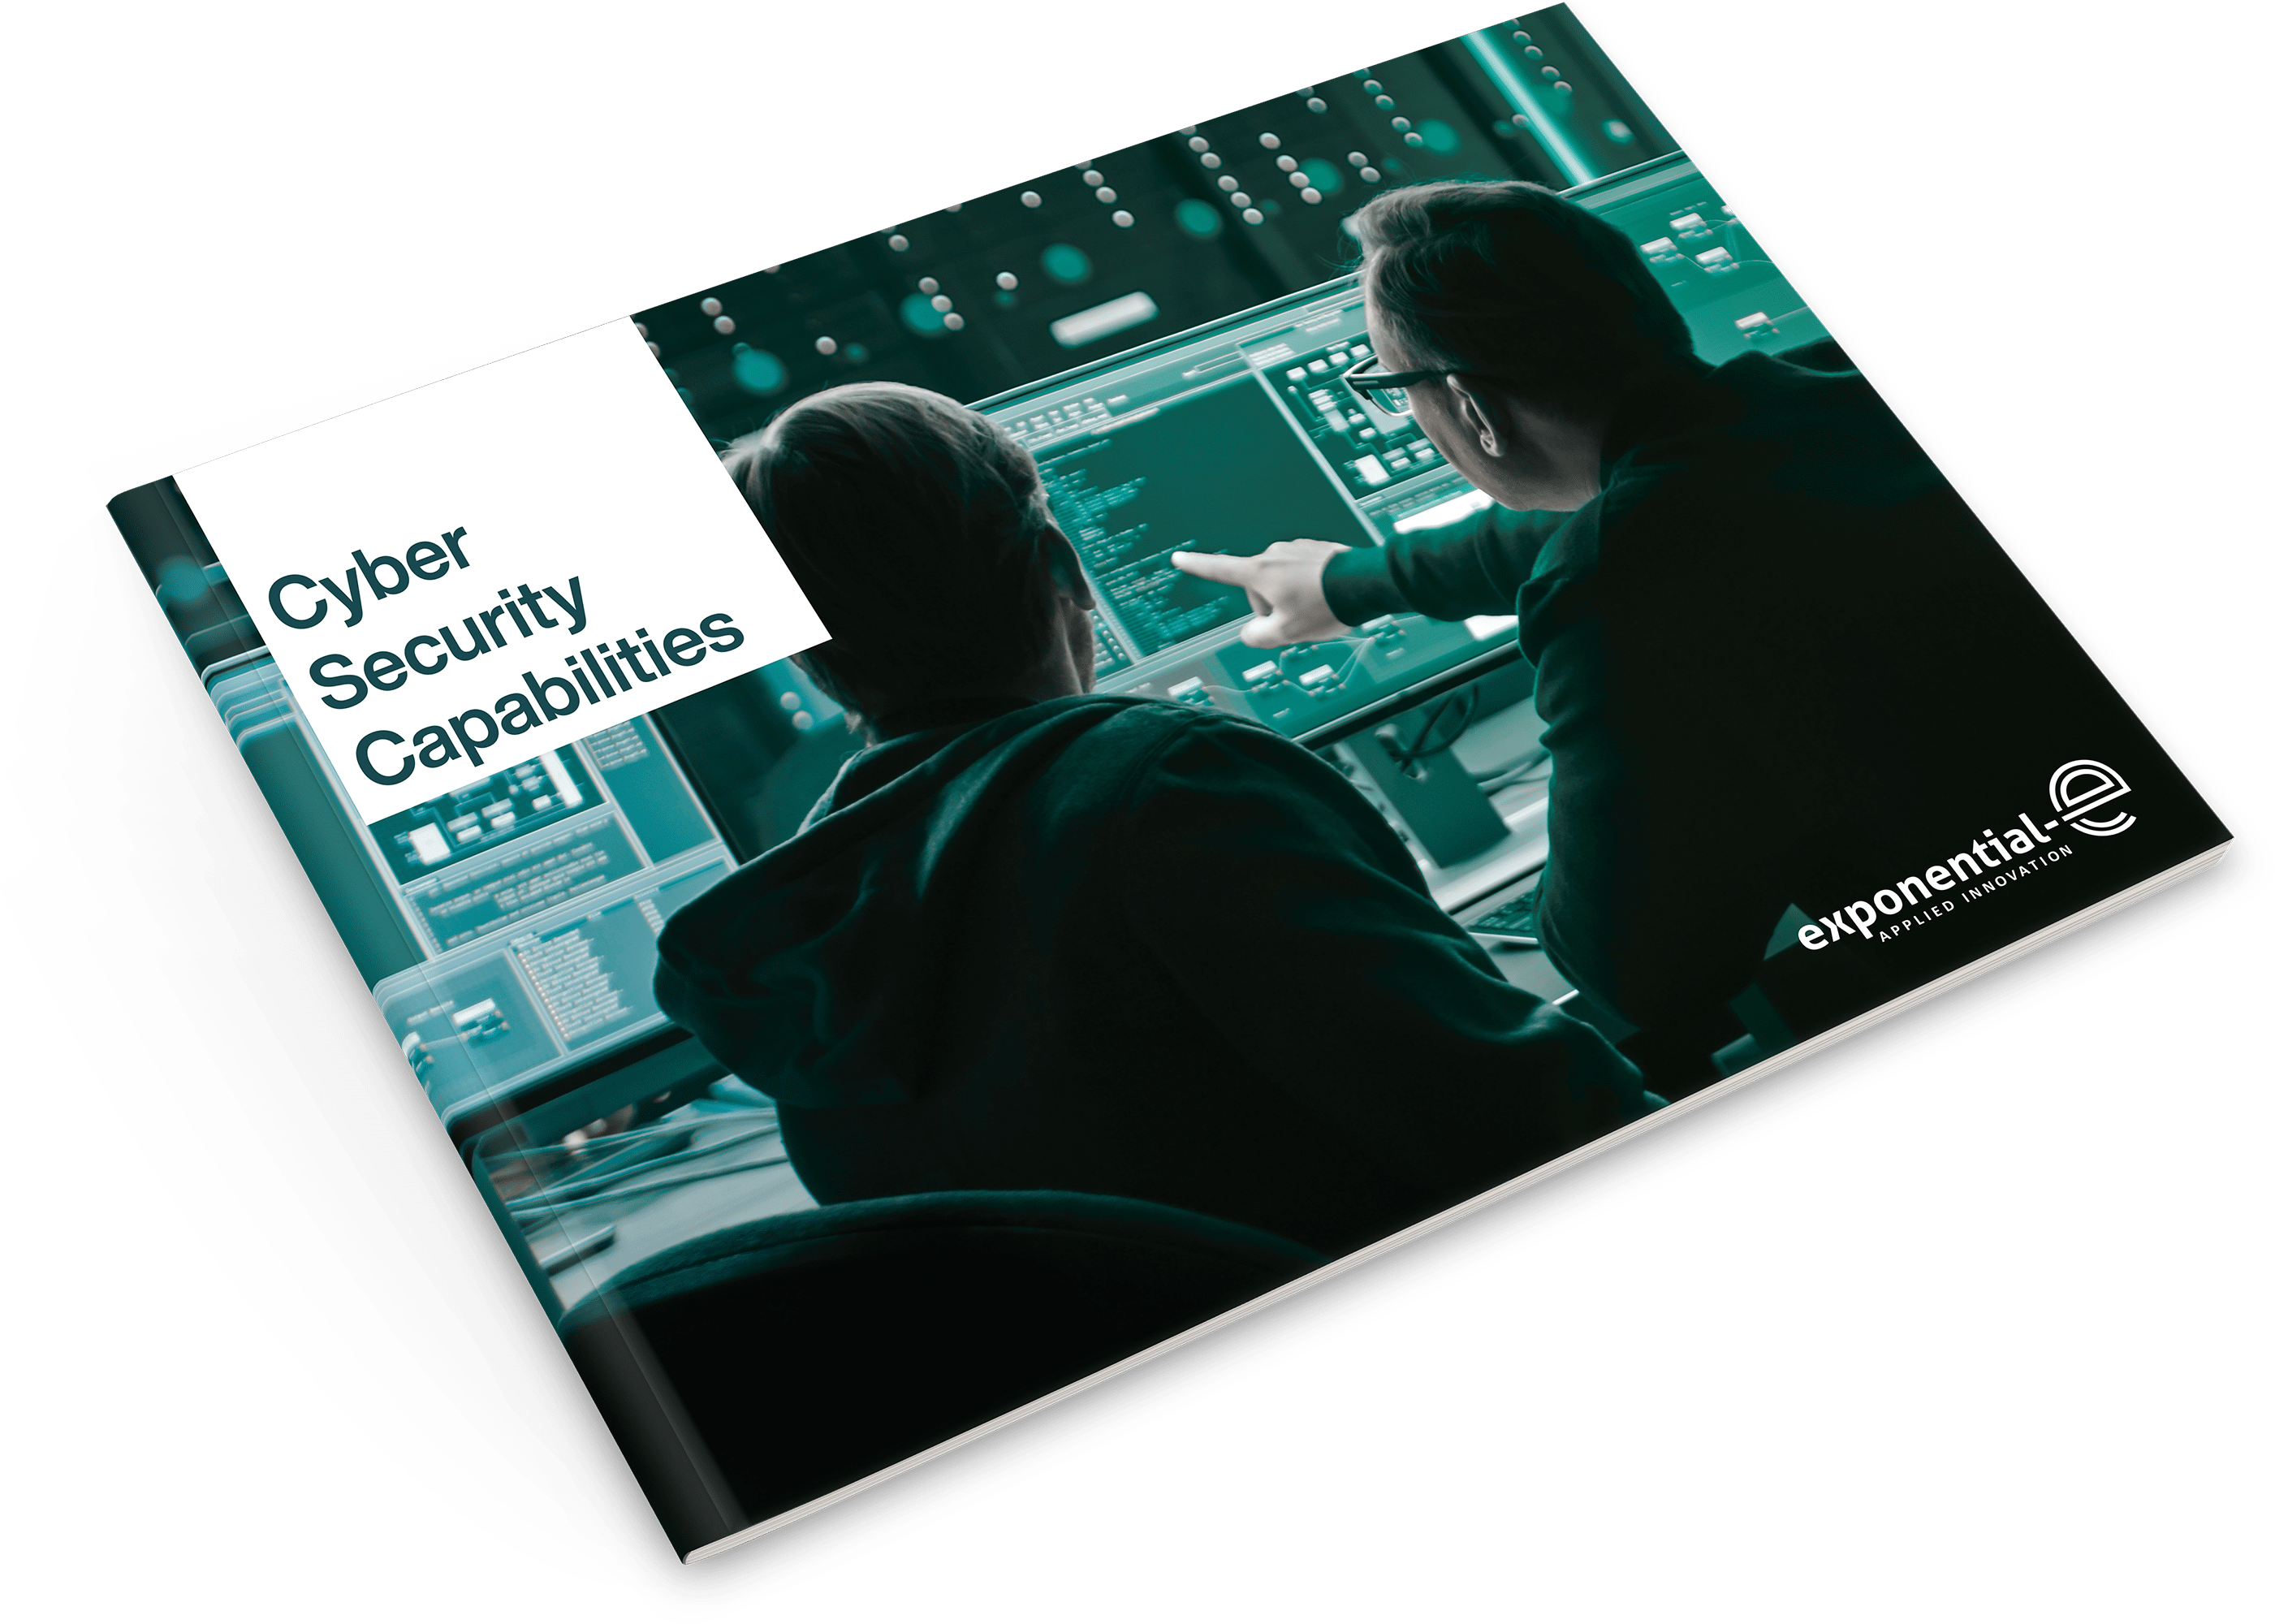 Download our Cyber Security Capabilities Brochure